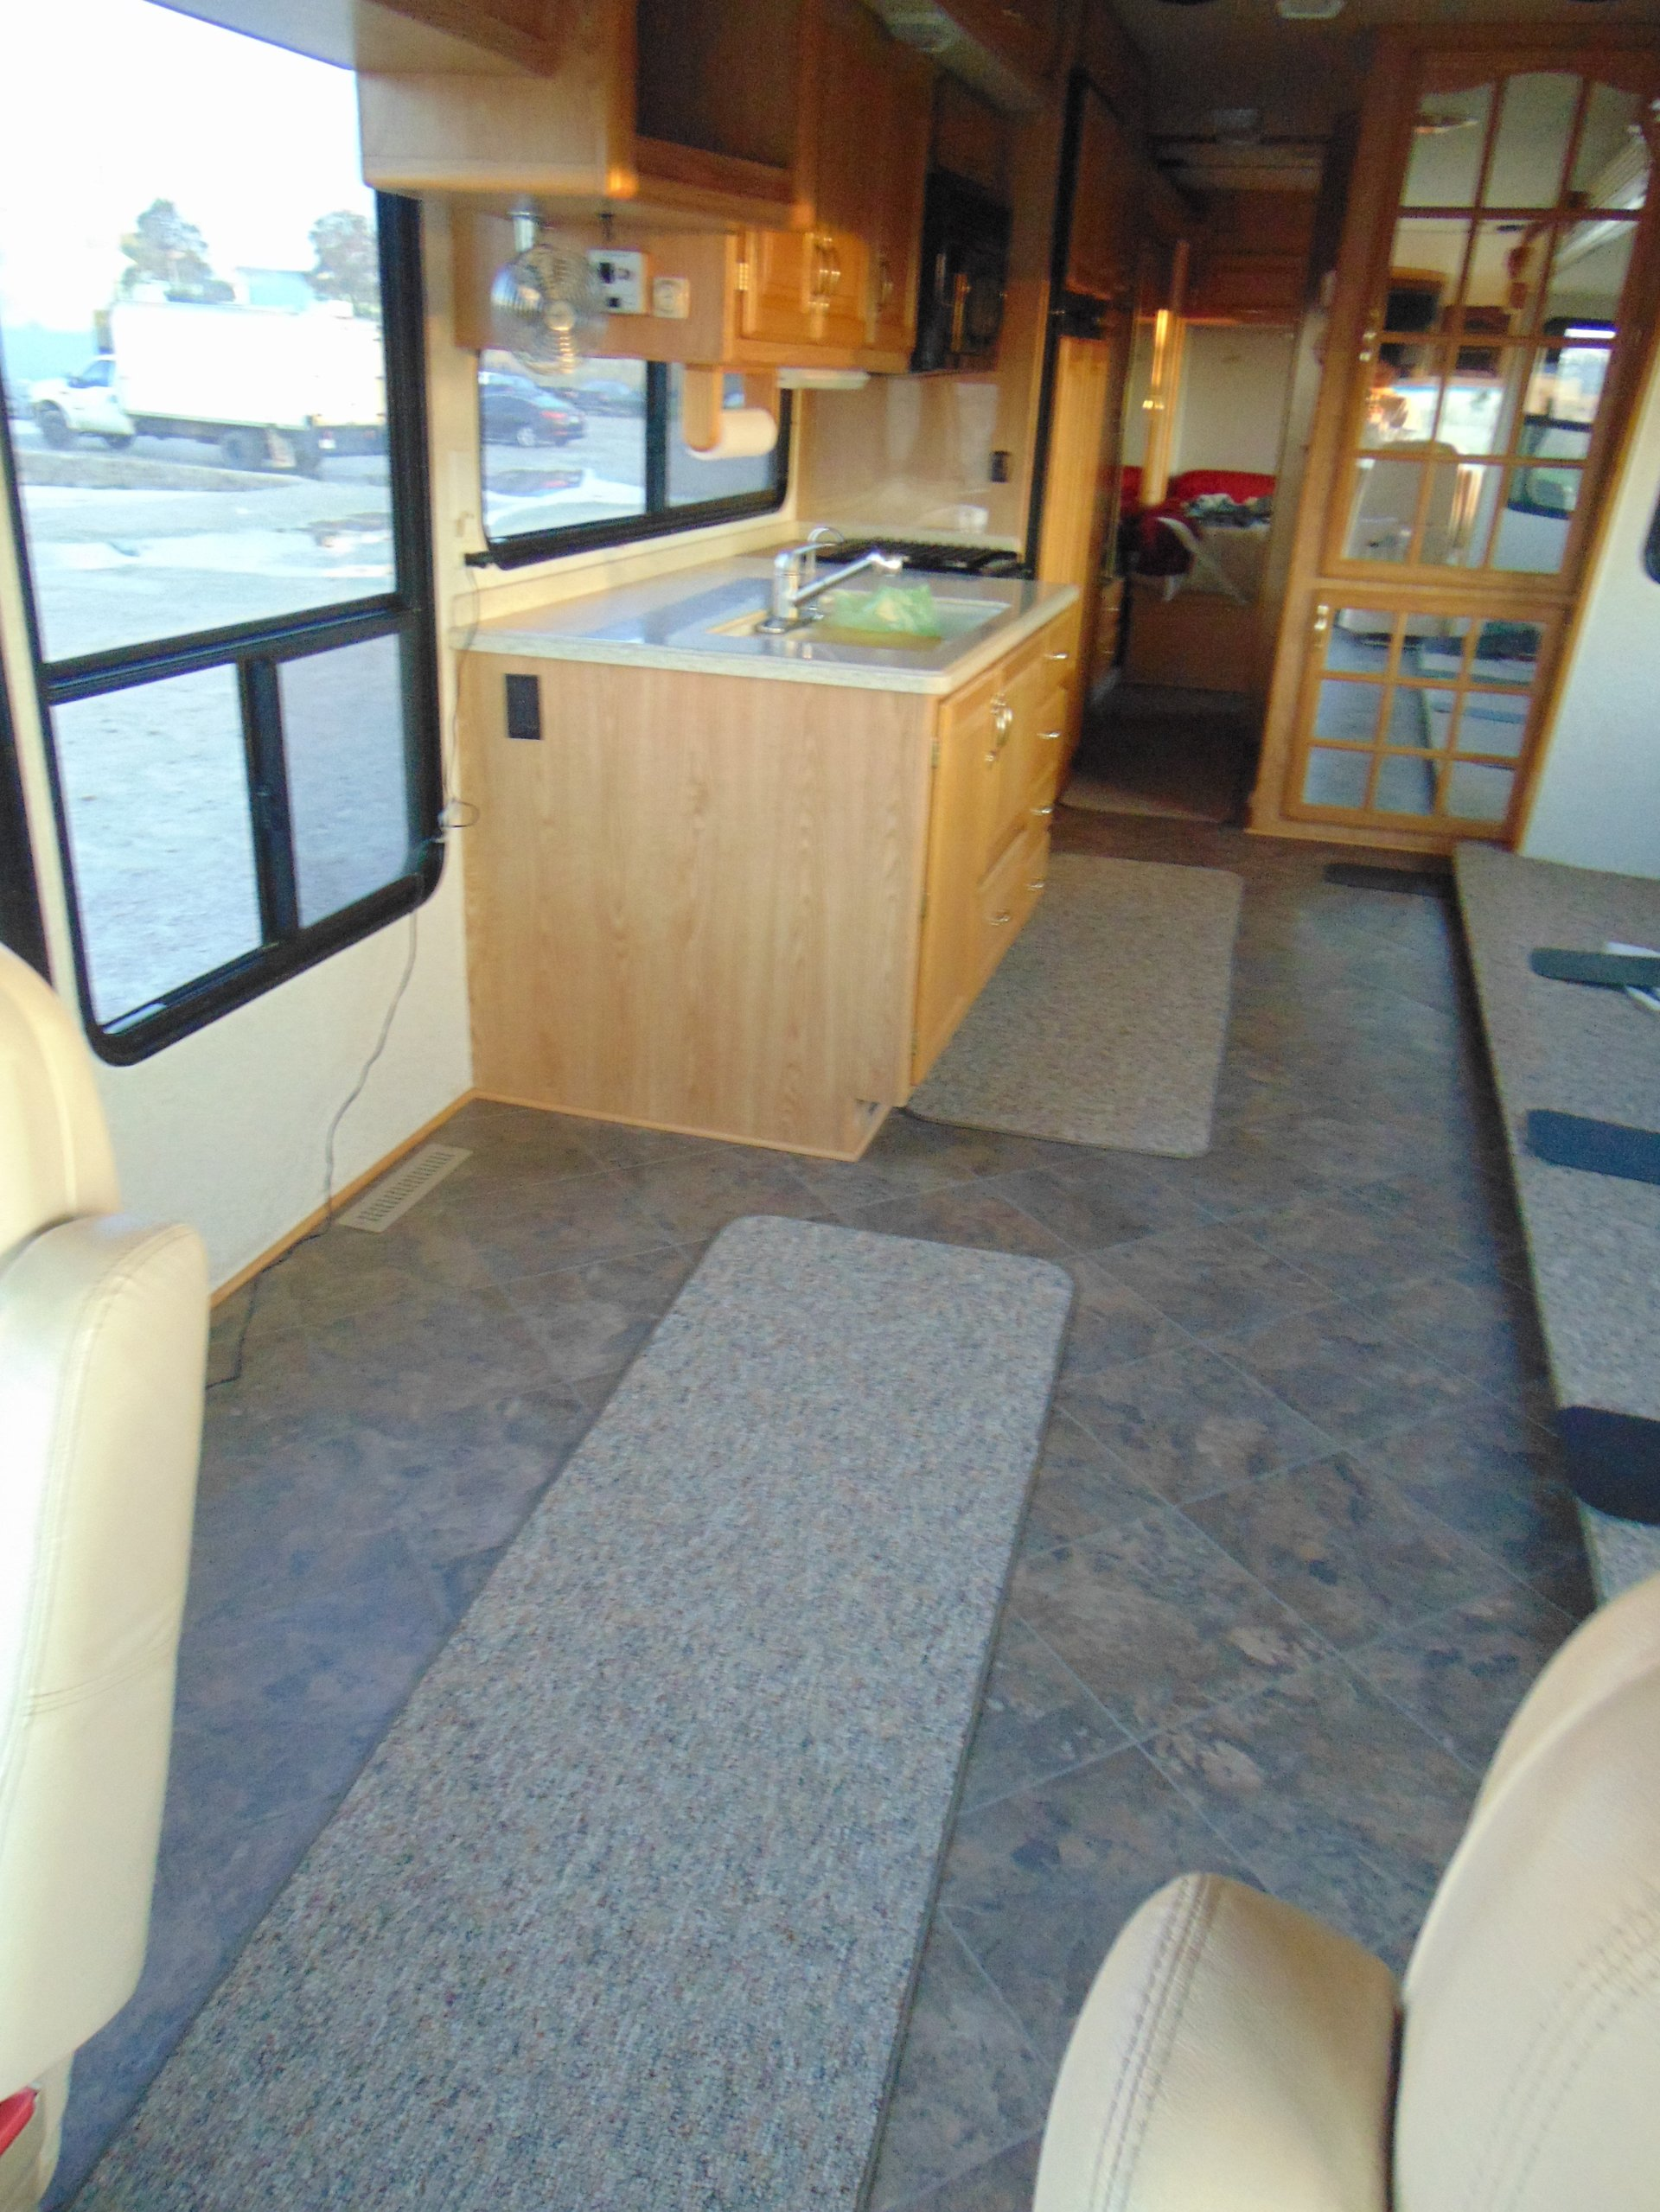 Fiberglass Siding Changed Rv Checking Delam Blisters